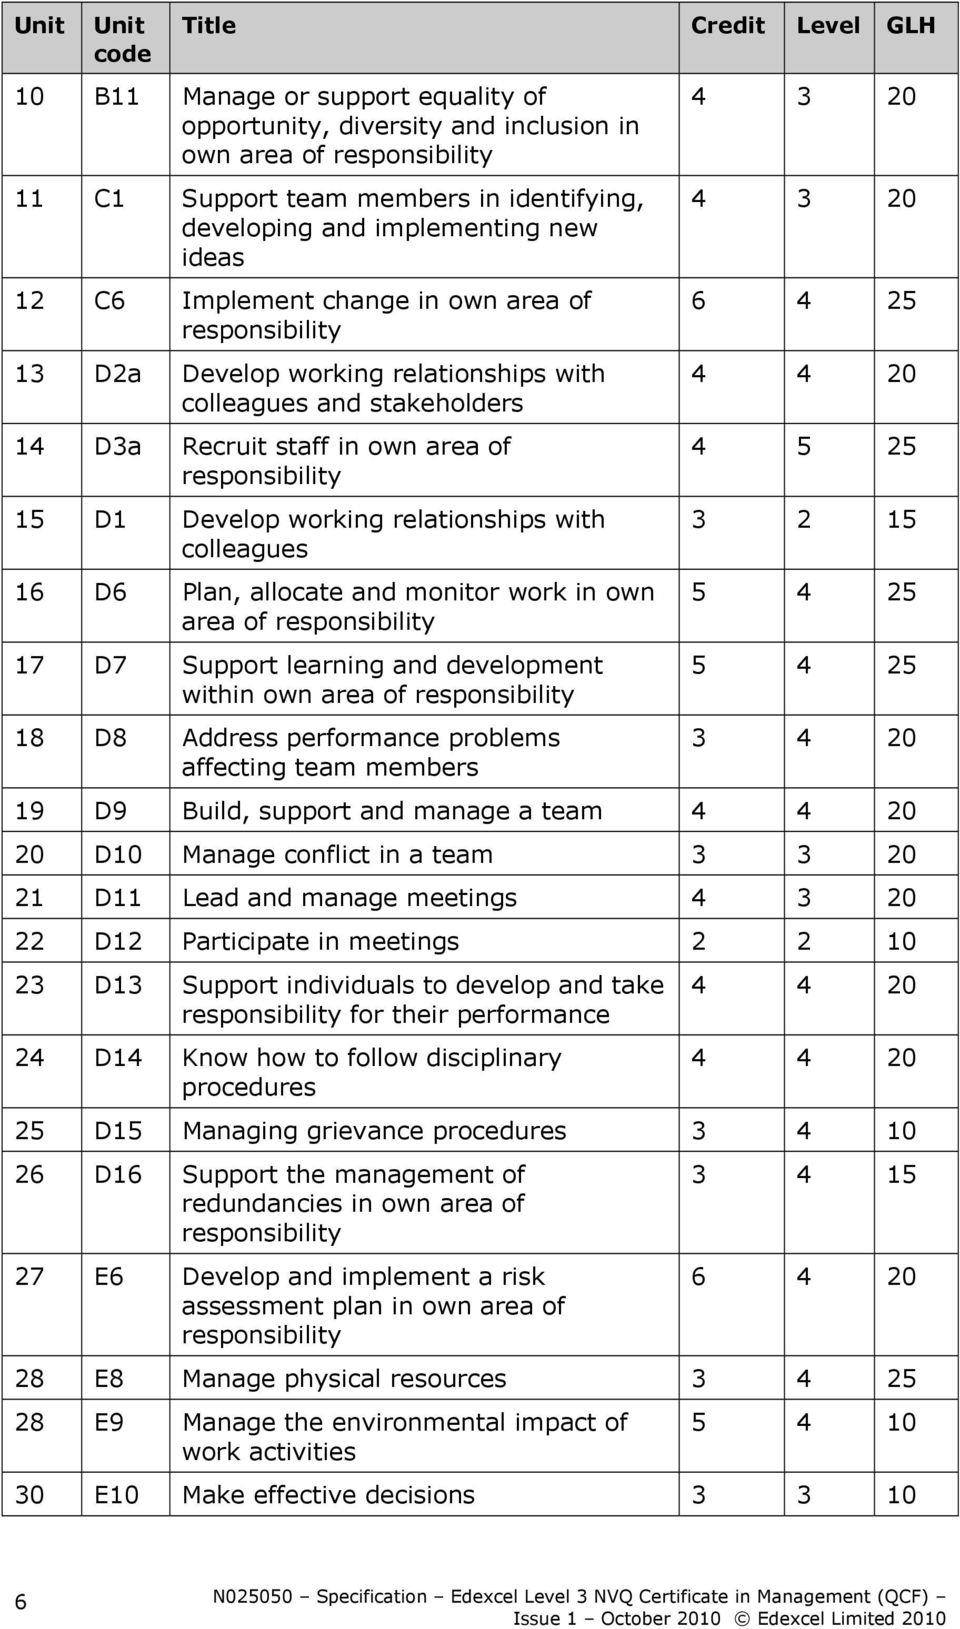 D1 Develop working relationships with colleagues 16 D6 Plan, allocate and monitor work in own area of responsibility 17 D7 Support learning and development within own area of responsibility 18 D8